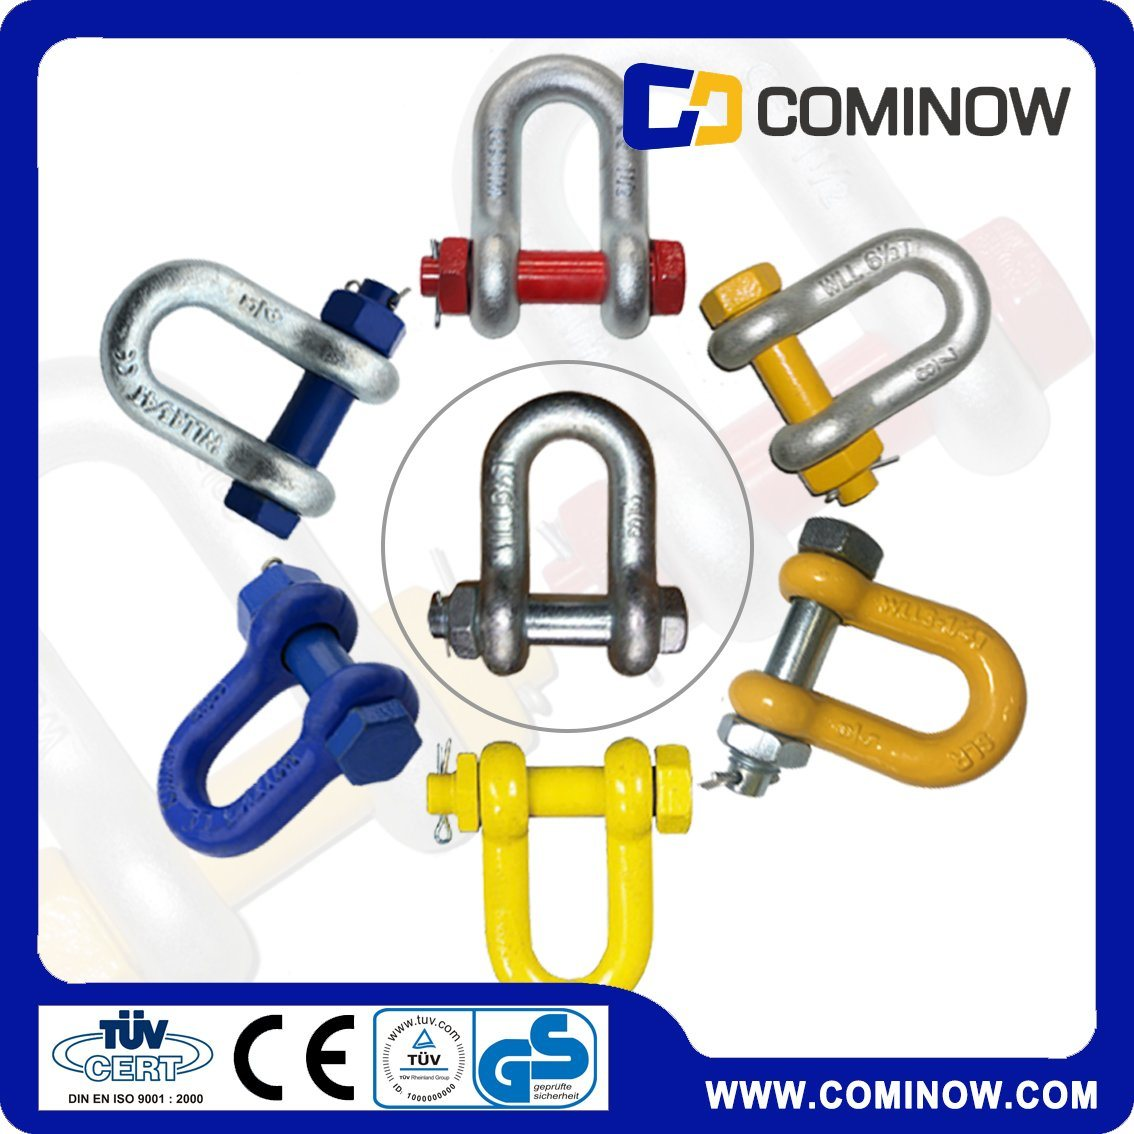 High Tensile Drop Forged Anchor Chain Shackle with Bolt and Nut / G2150 Us Type Dee Shackle